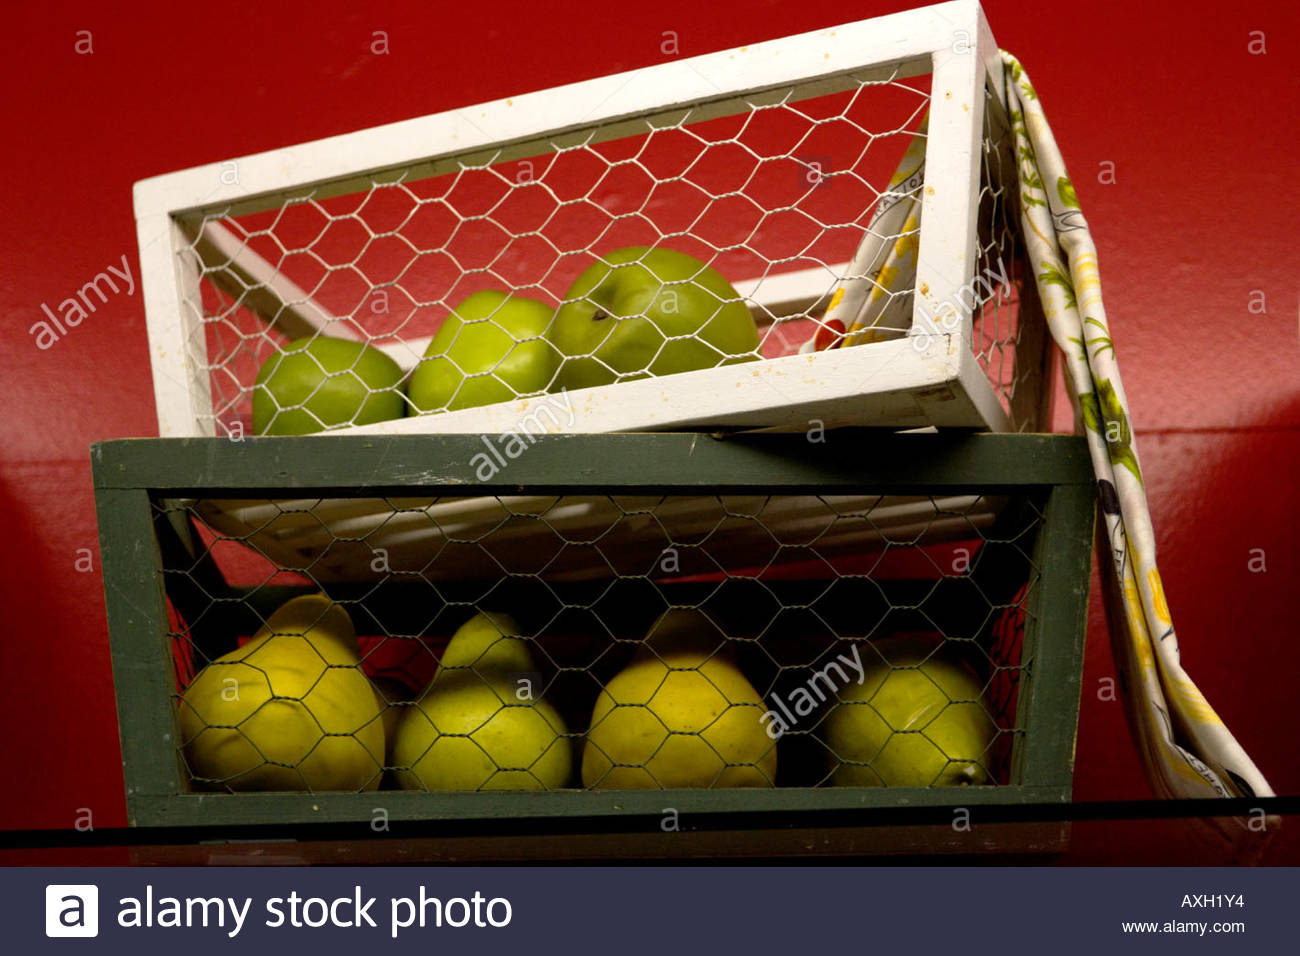 Pear Basket on Shelf at the Los Angeles County Fair California - Stock Image